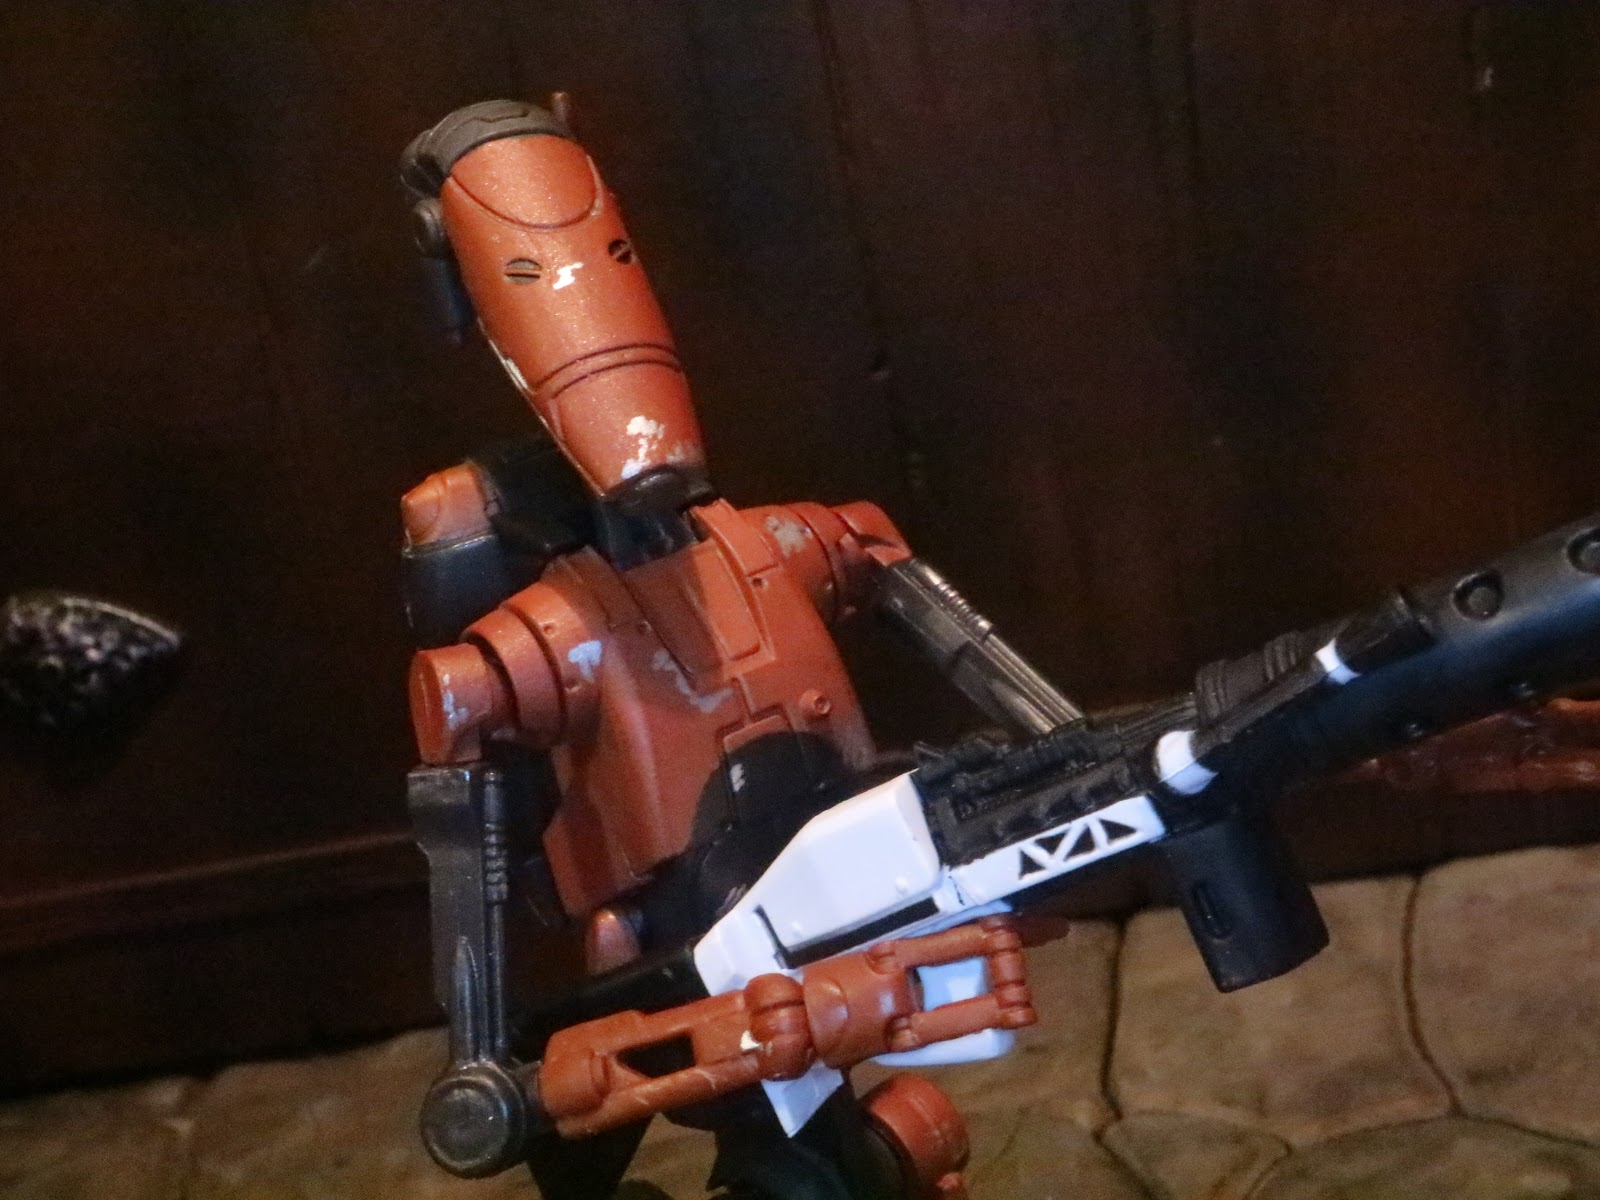 Action Figure Barbecue Action Figure Review Heavy Battle Droid From Star Wars The Black Series Phase Iii By Hasbro